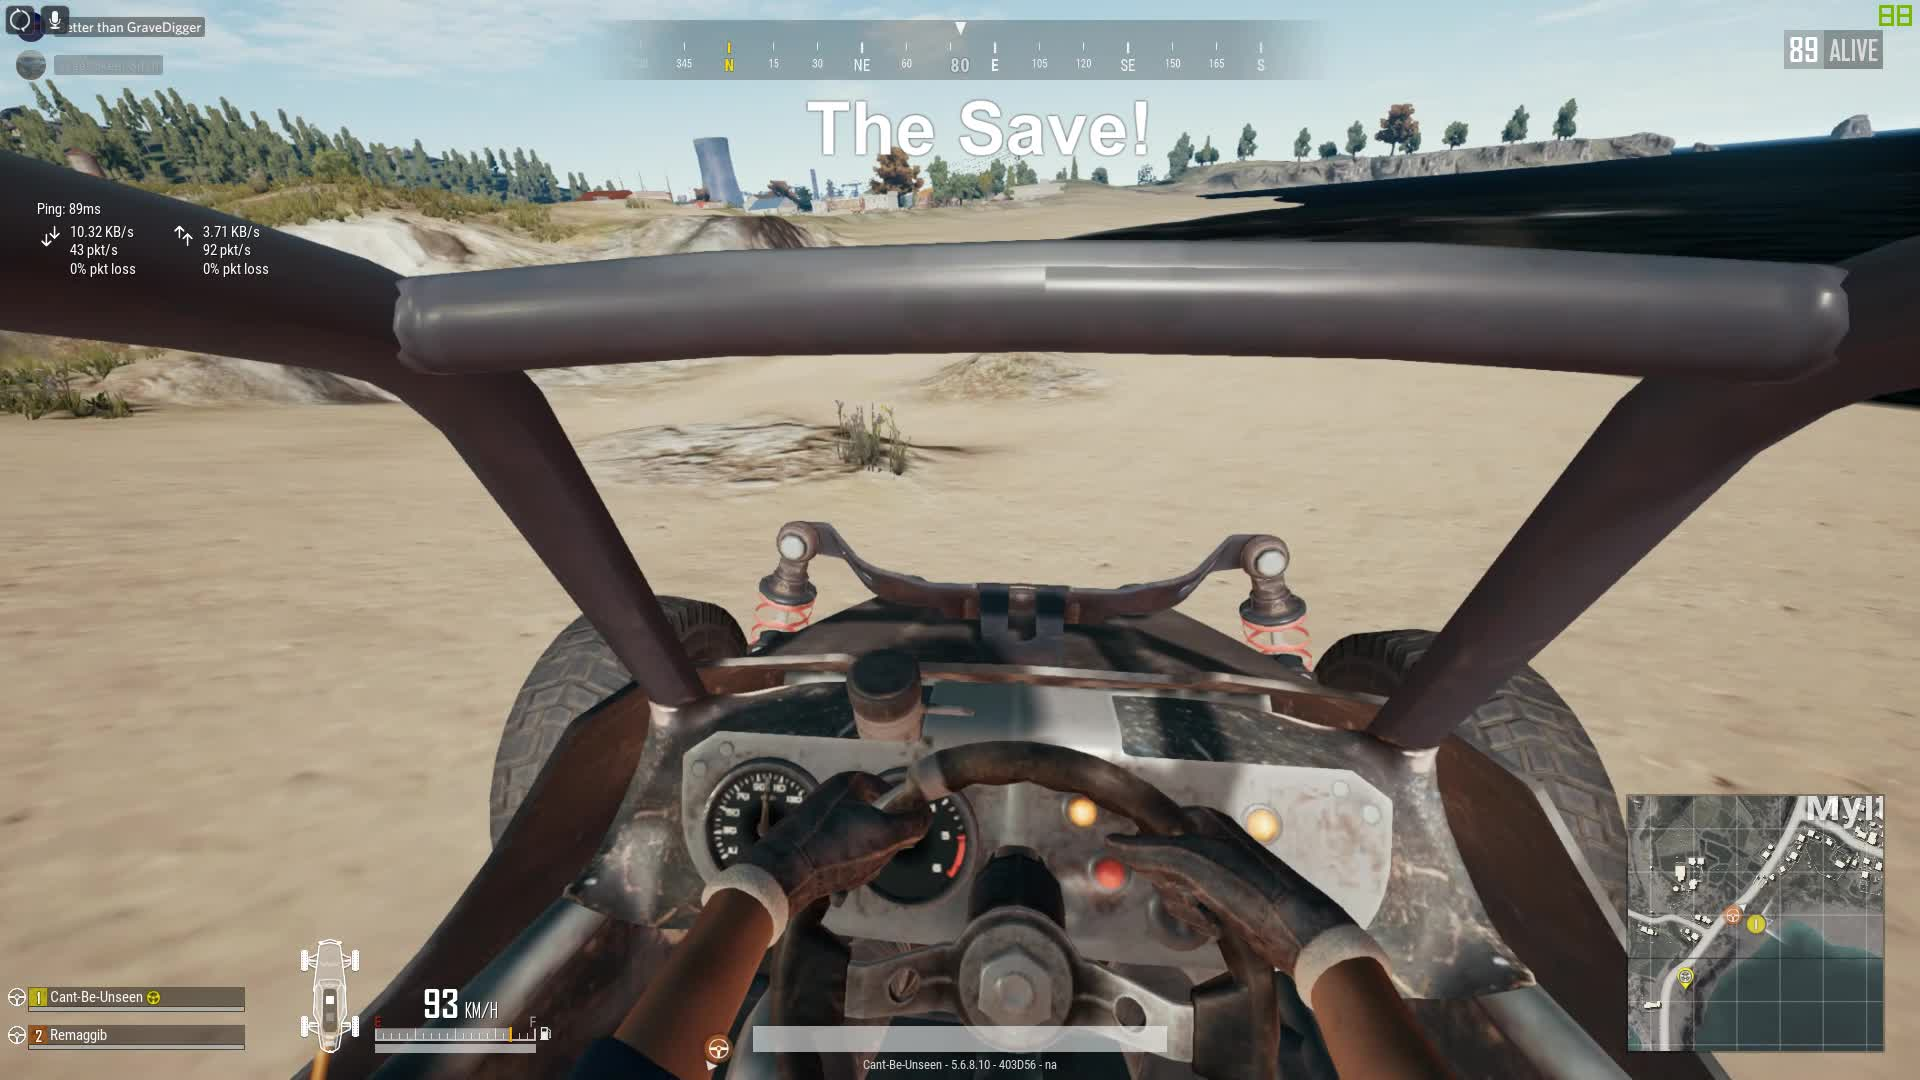 pubattlegrounds, pubg, When a Tragedy turns into a Miracle! GIFs